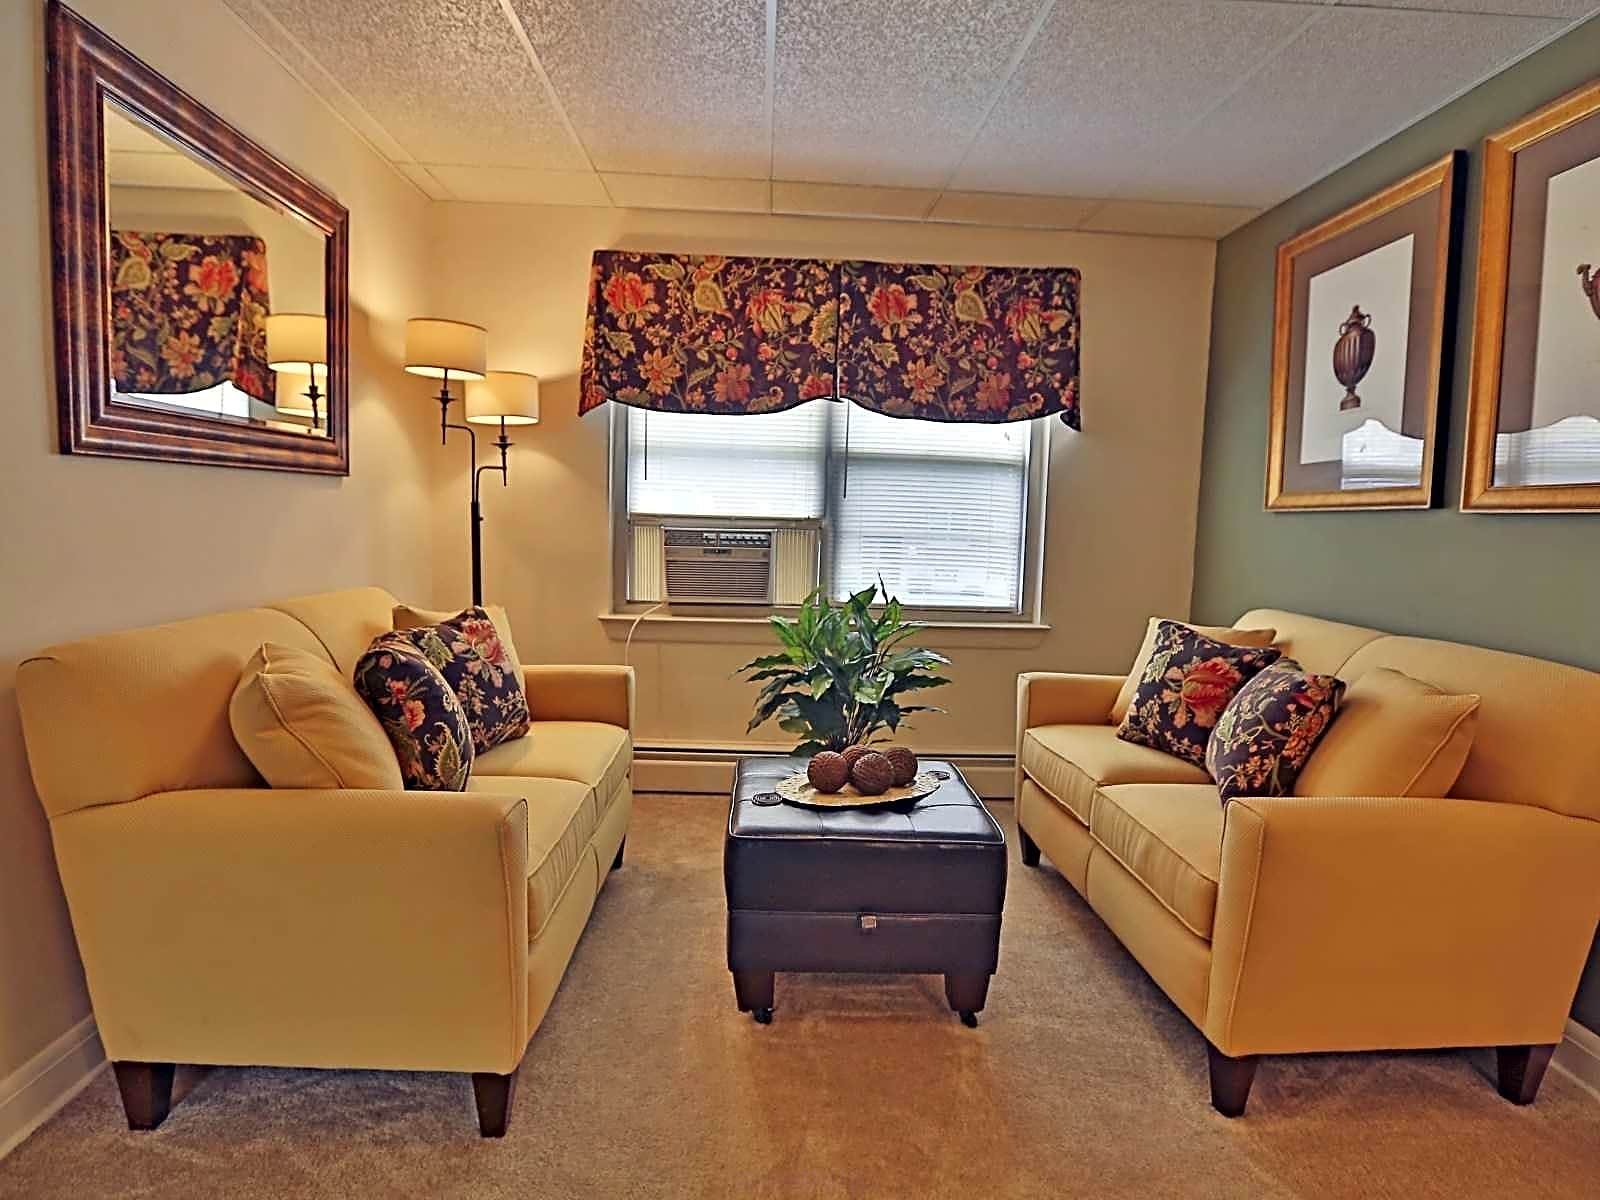 Apartments Near Towson University Loch Bend Apartments for Towson University Students in Towson, MD